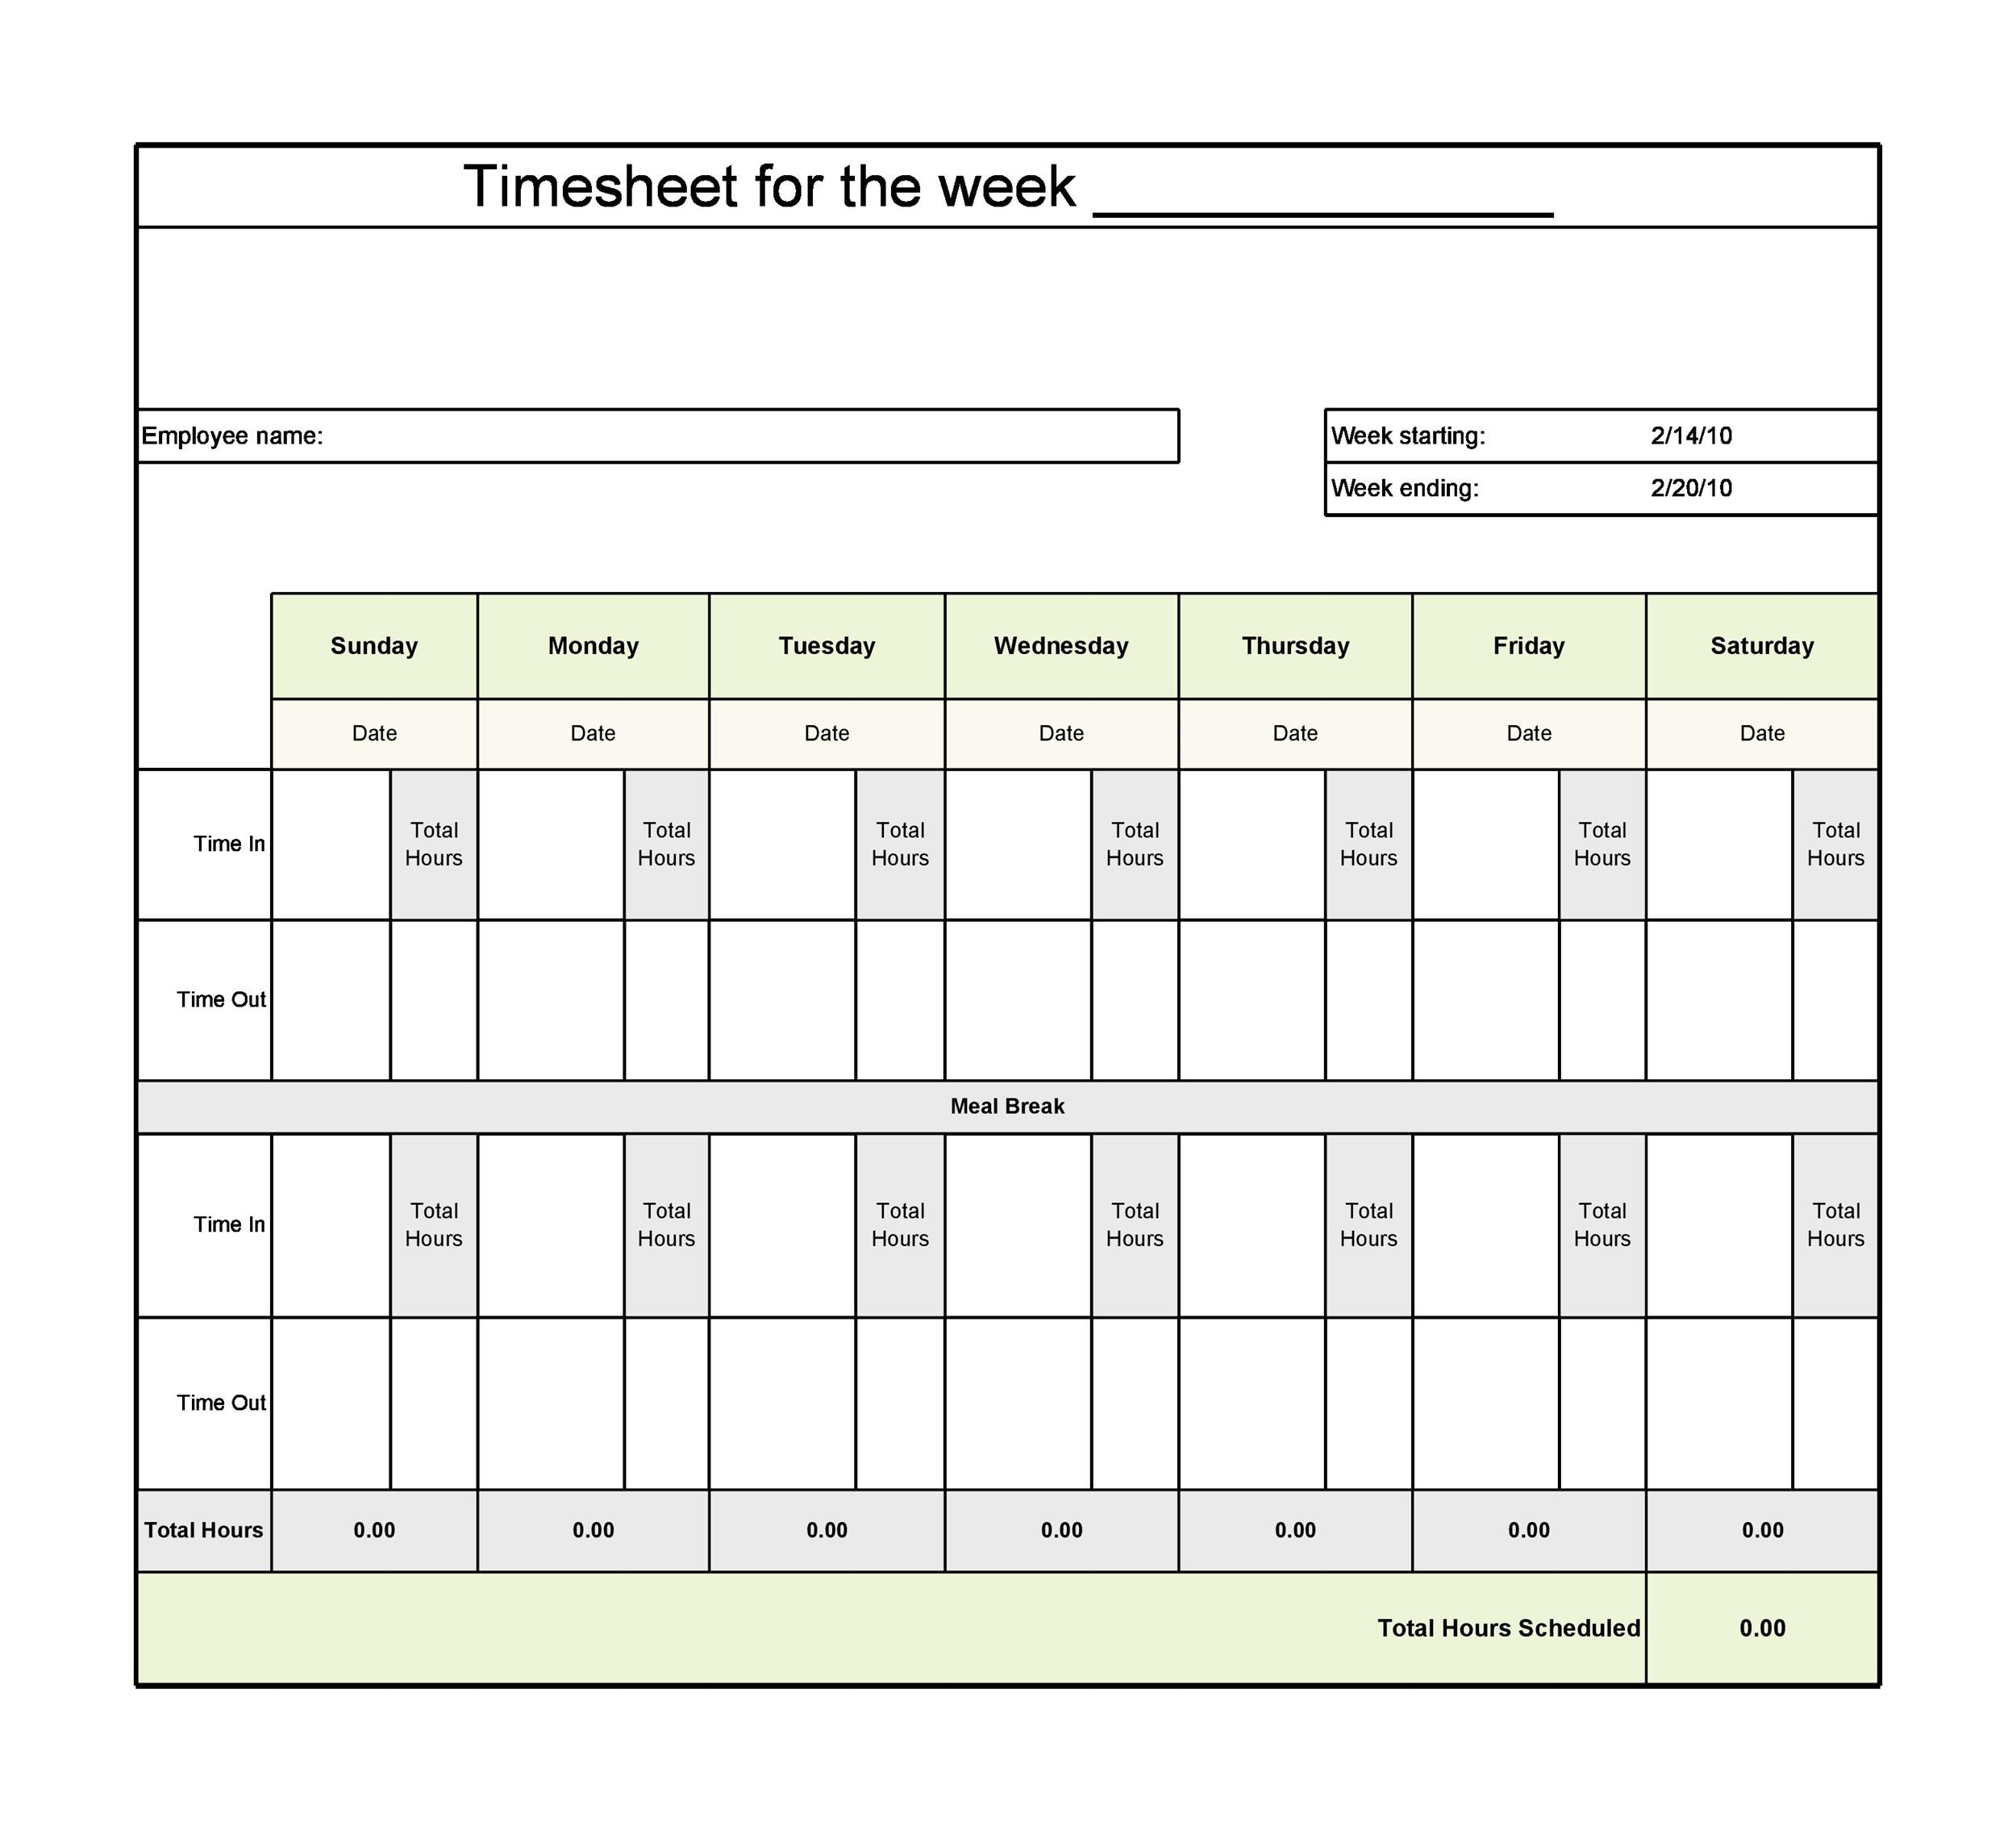 picture about Time Card Printable identify 40 Cost-free Timesheet / Year Card Templates ᐅ Template Lab